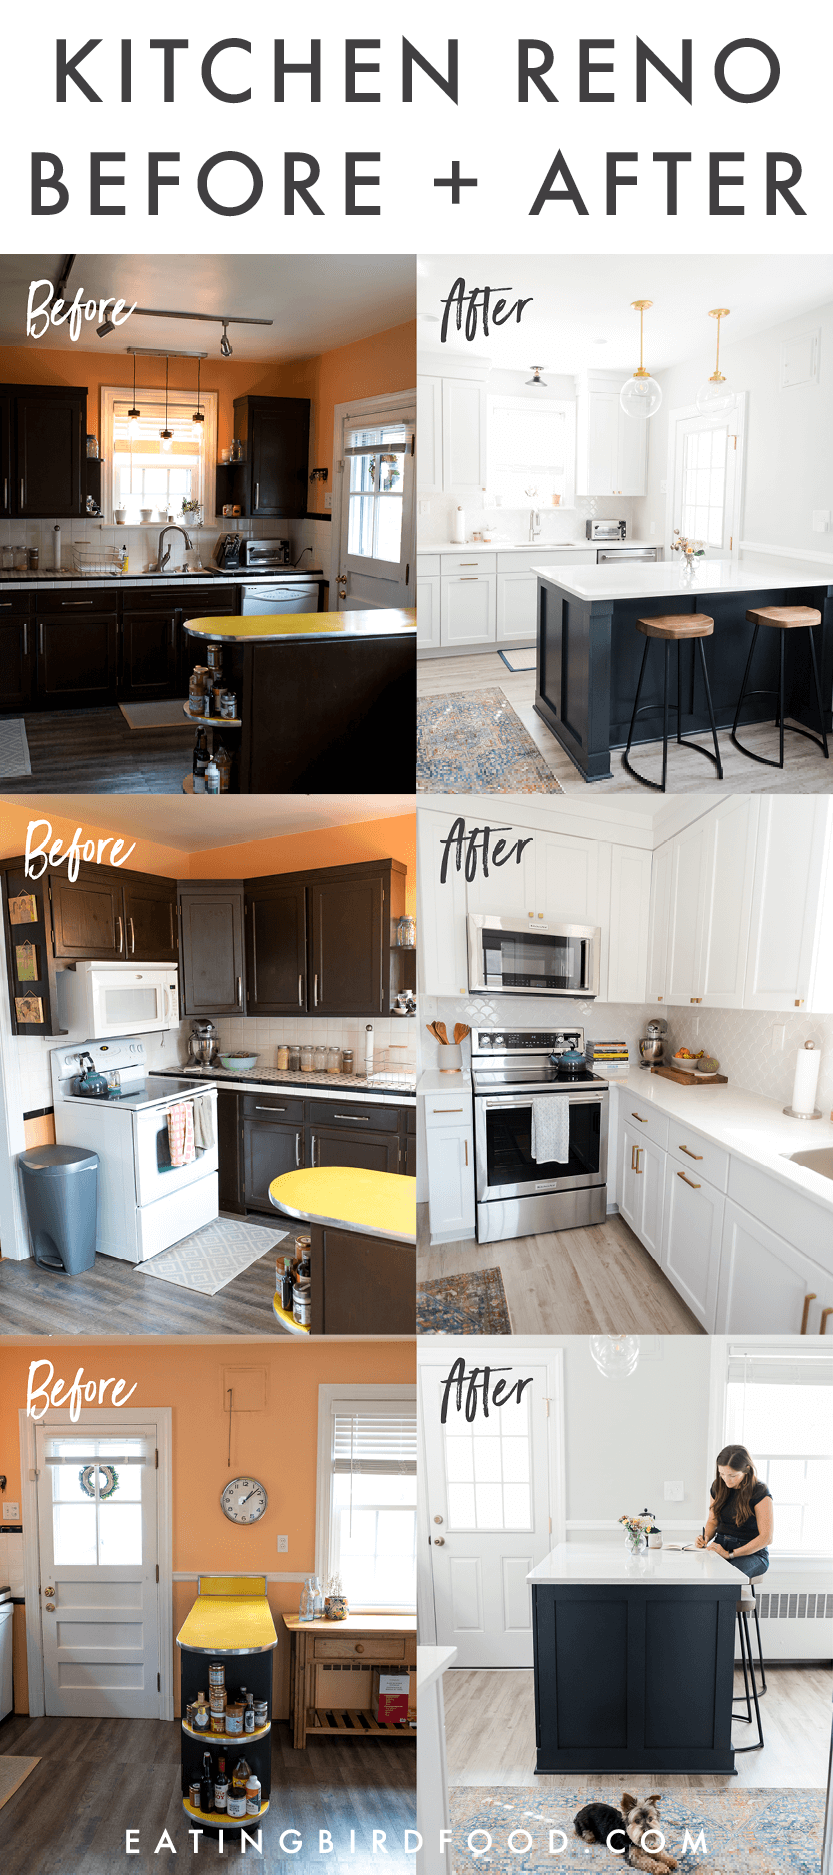 Kitchen Renovation Before And After Eating Bird Food Cheap Kitchen Remodel Kitchen Renovation Simple Kitchen Remodel